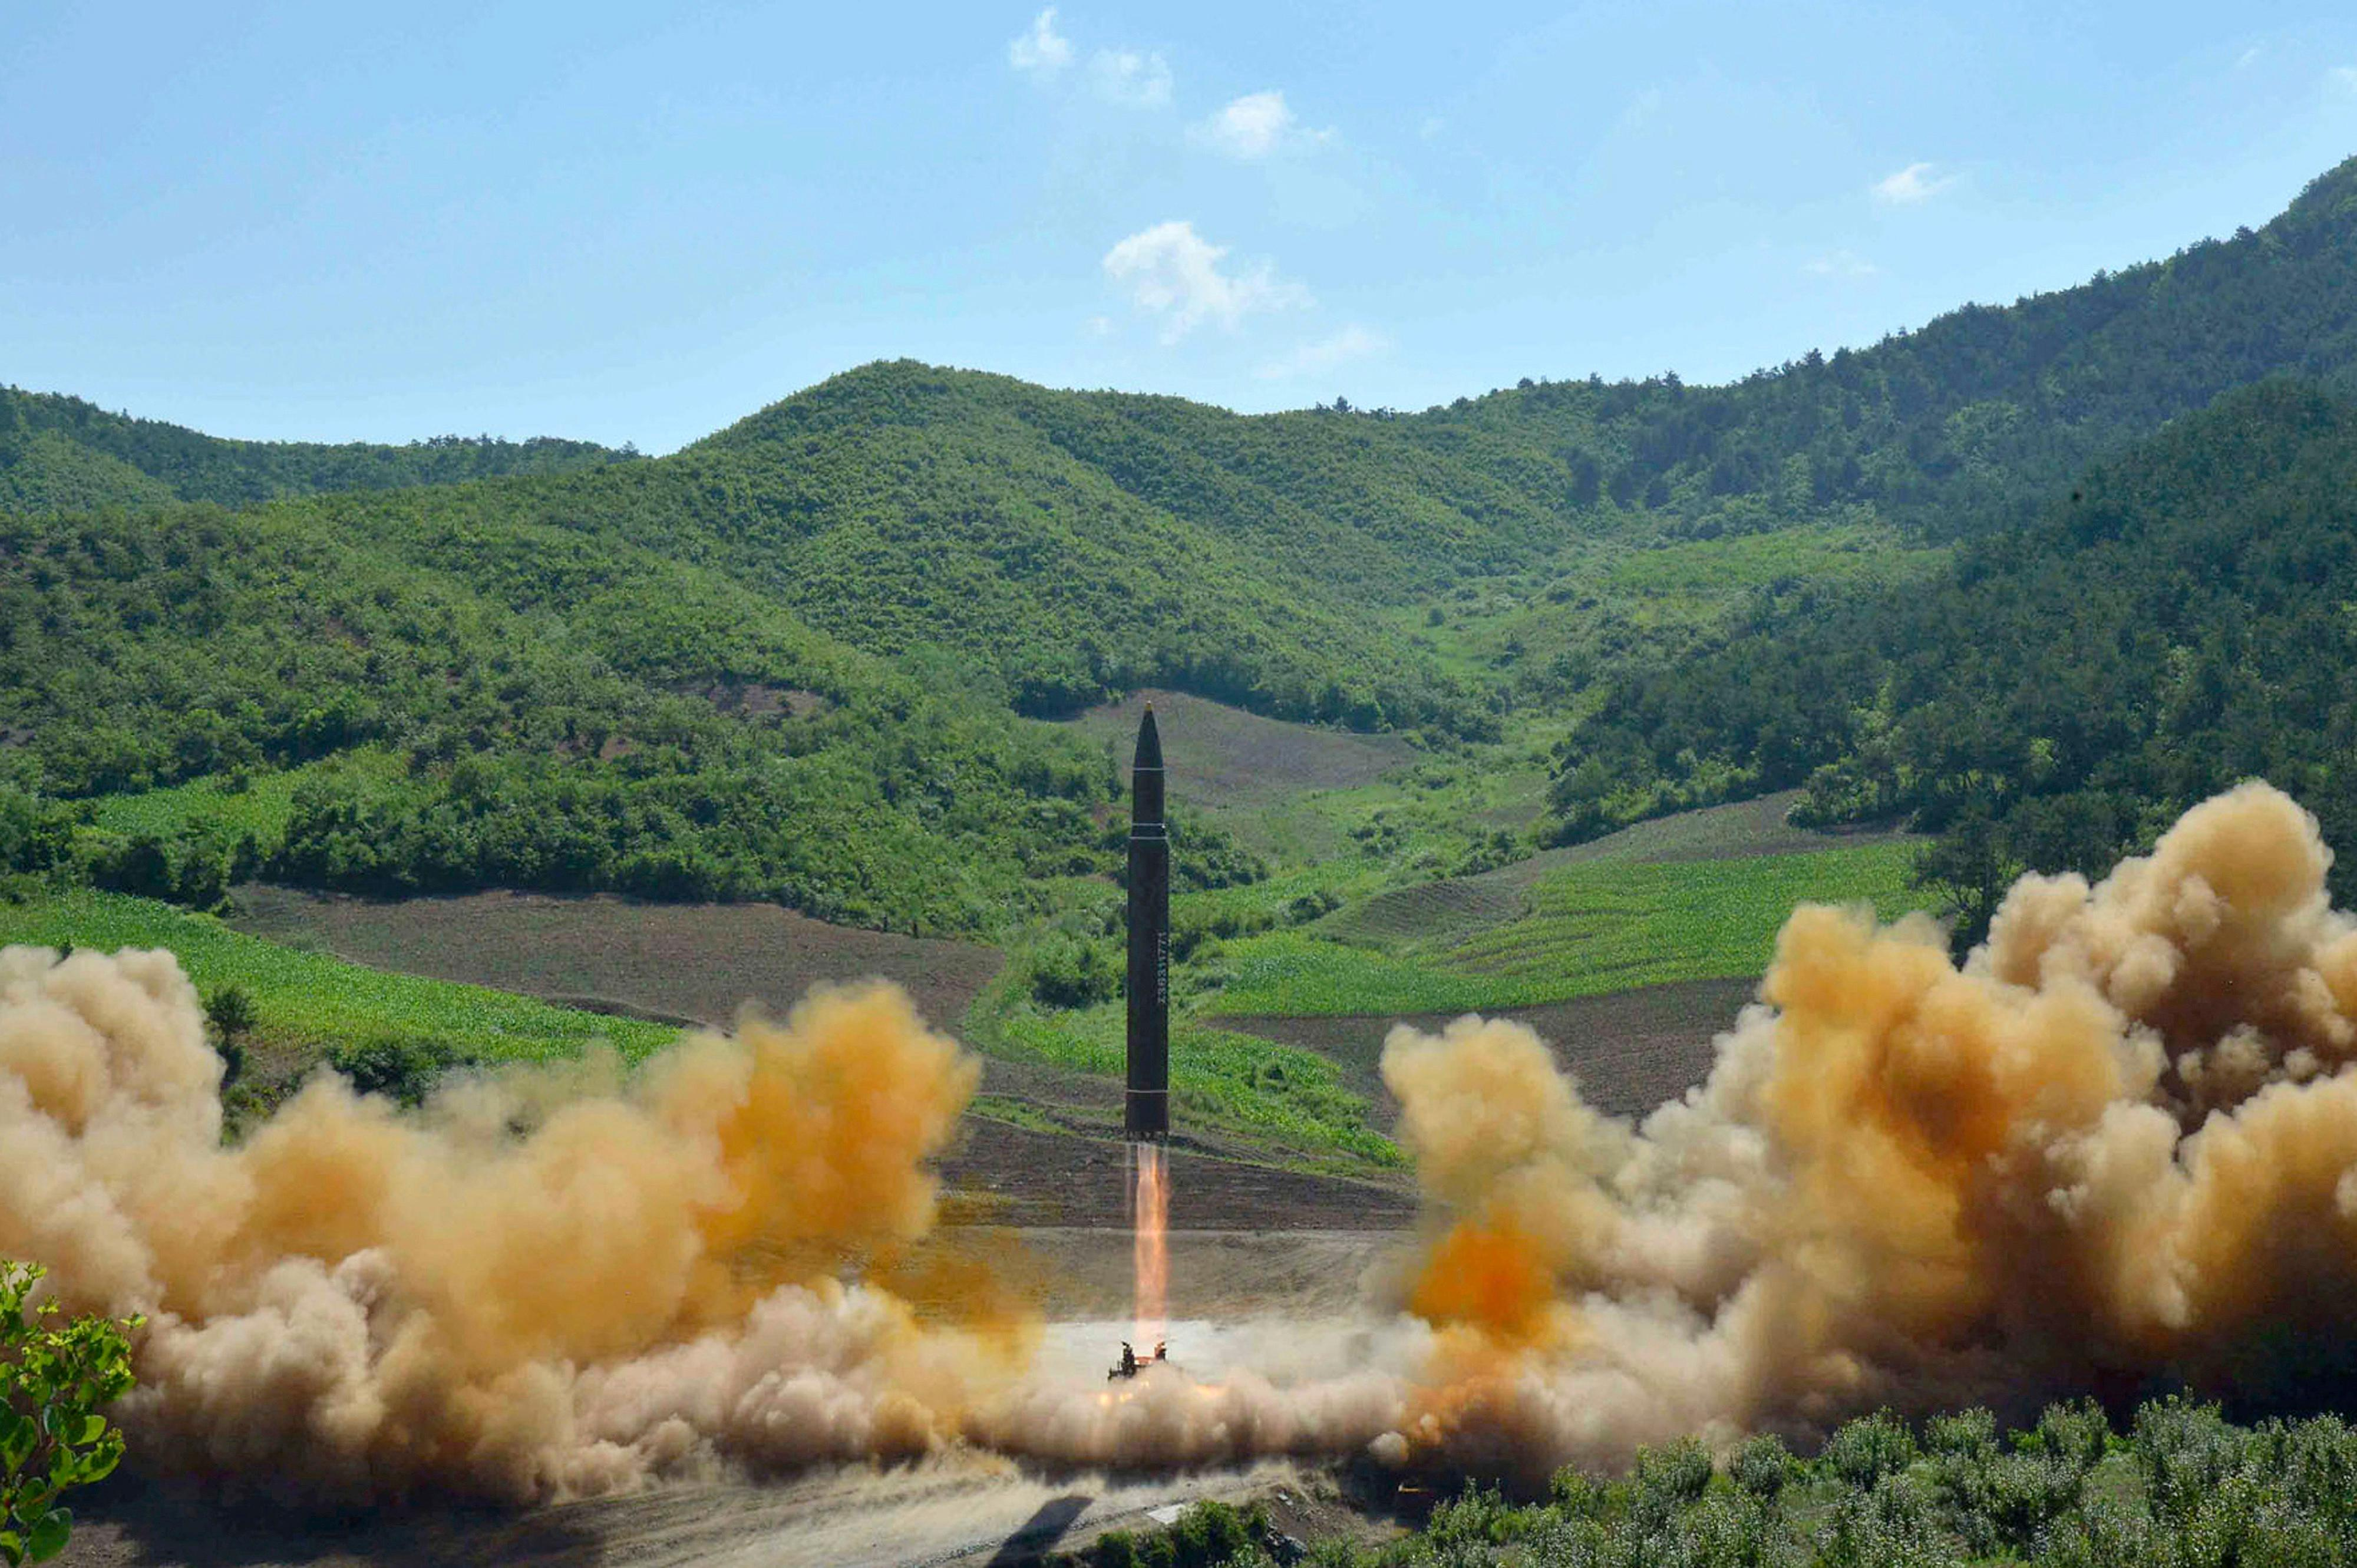 FILE- In this July 4, 2017, file photo distributed by the North Korean government shows what was said to be the launch of a Hwasong-14 intercontinental ballistic missile, ICBM, in North Korea's northwest. North Korea has been condemned and sanctioned for its nuclear ambitions, yet has still received food, fuel and other aid from its neighbors and adversaries for decades. How does the small, isolated country keep getting what it wants and needs to prevent its collapse? (Korean Central News Agency/Korea News Service via AP, File)